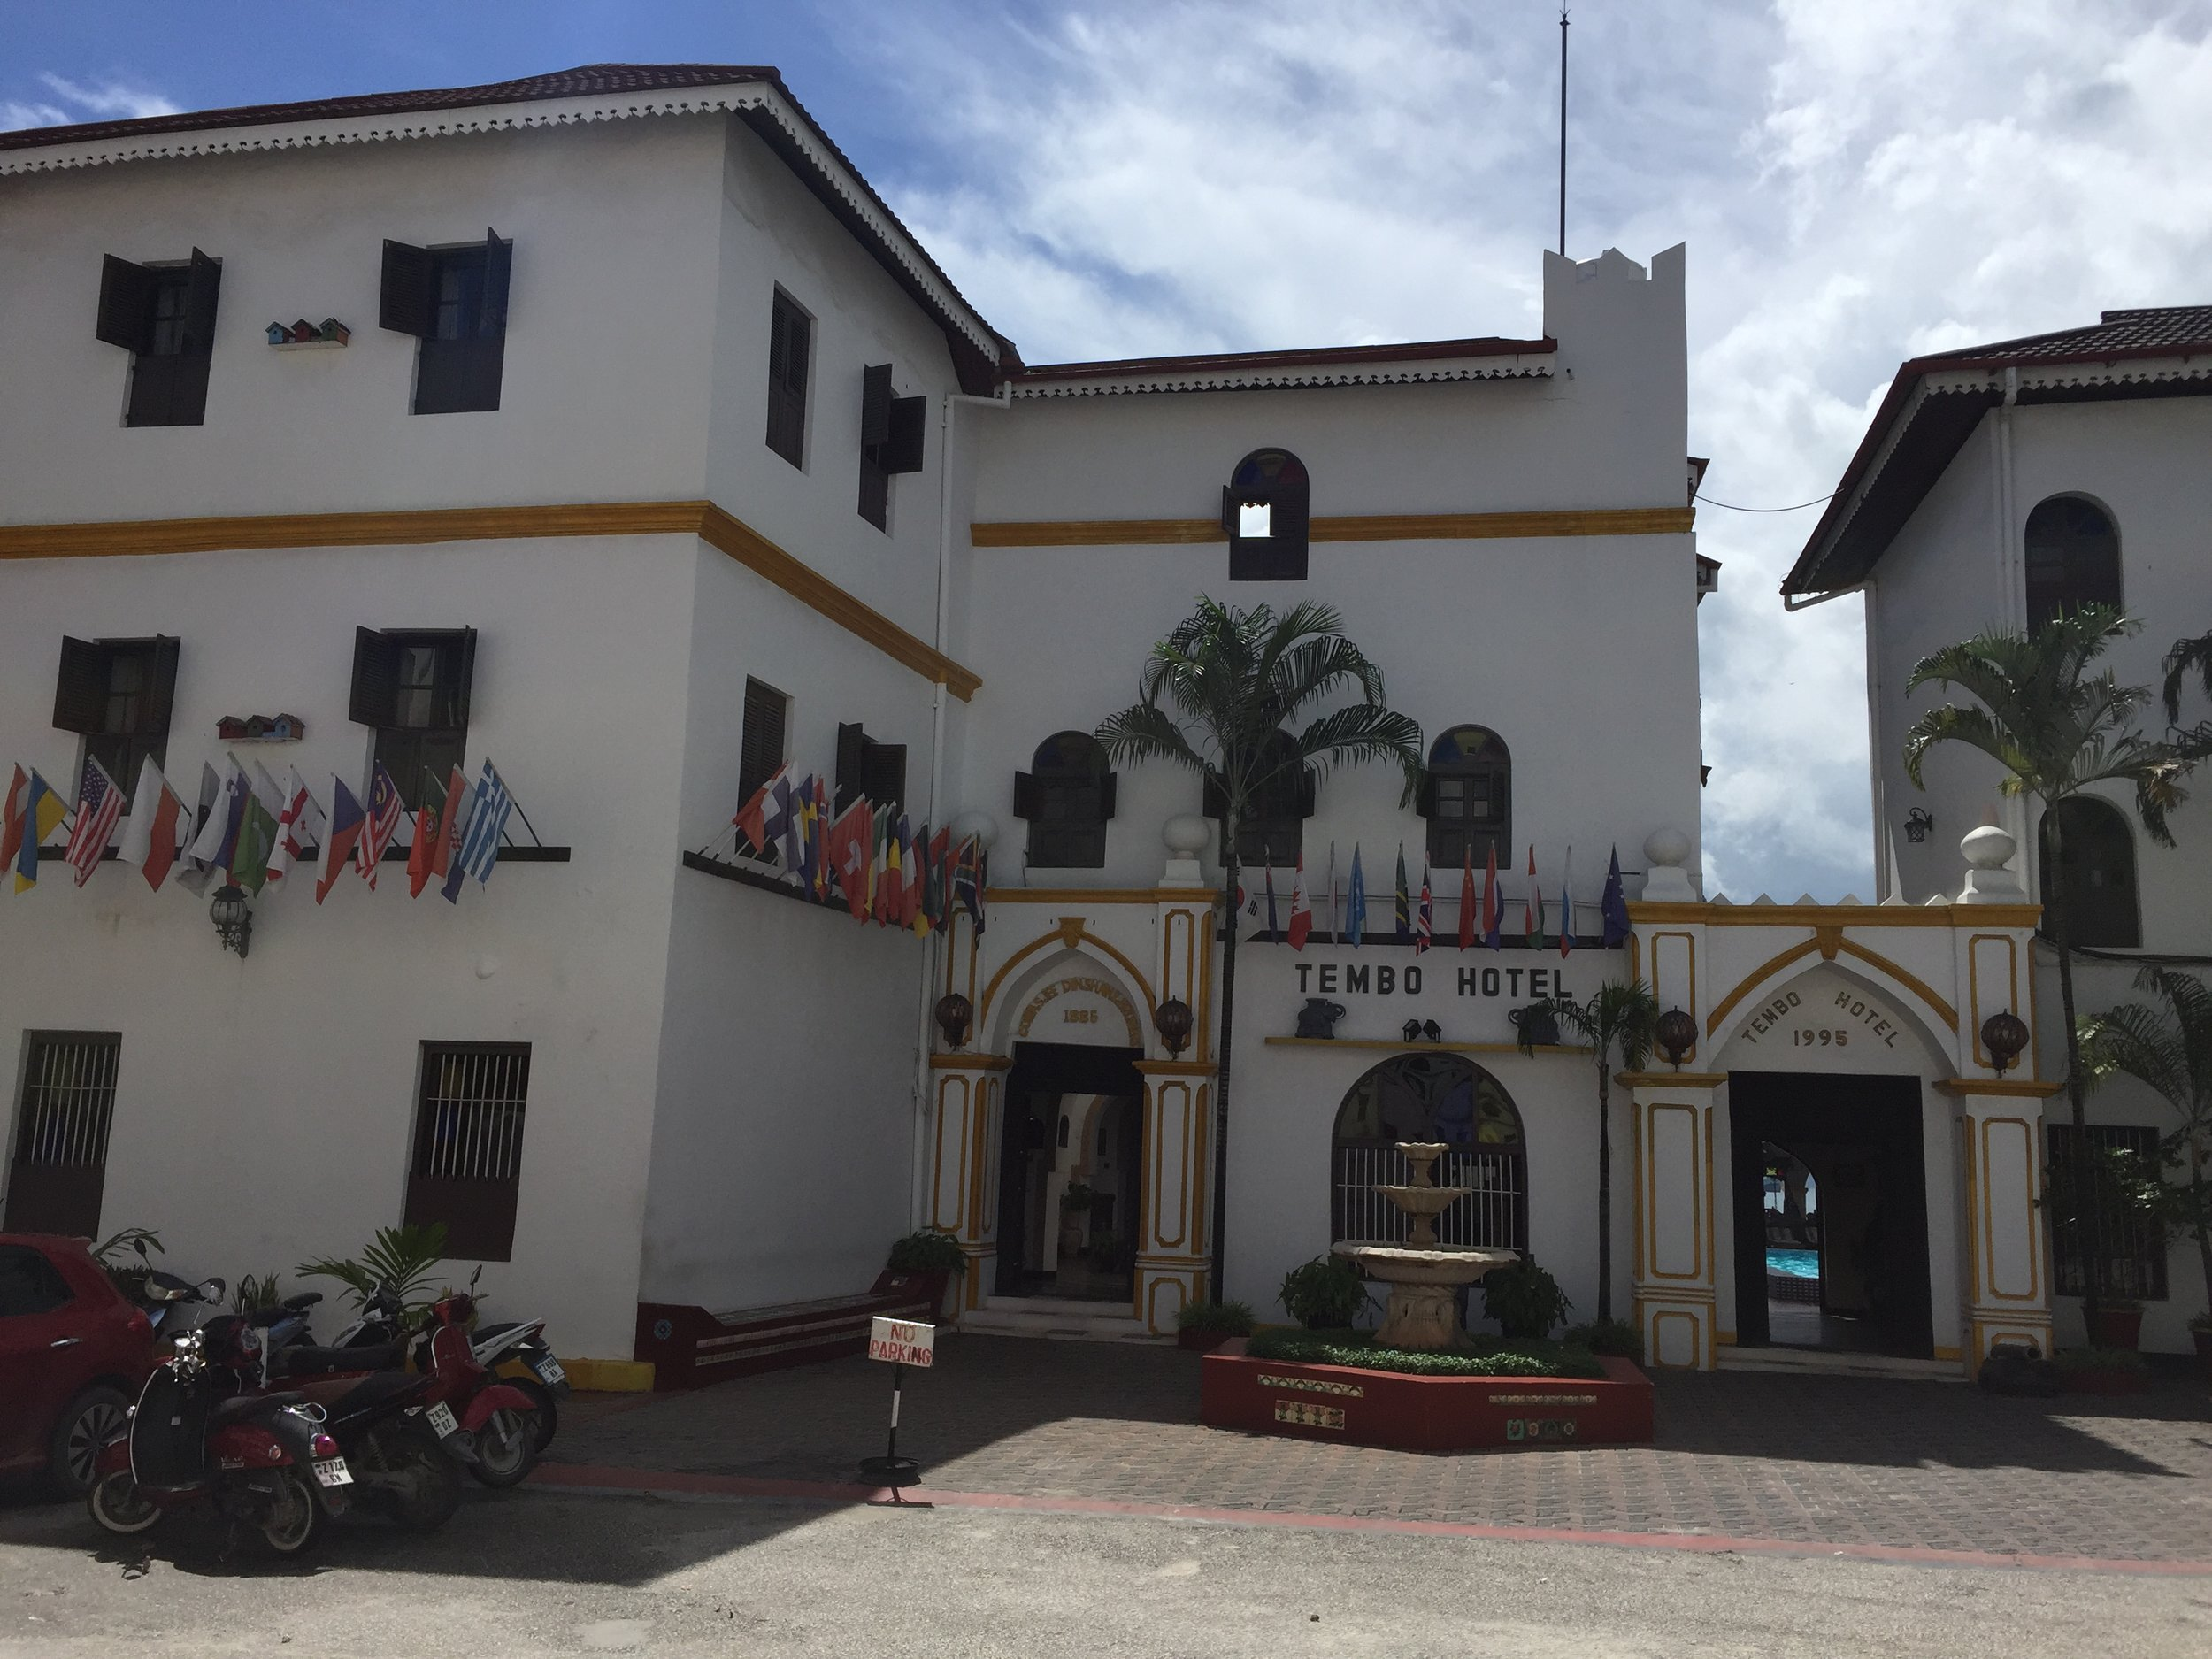 The old colonial-style buildings of Stone Town.